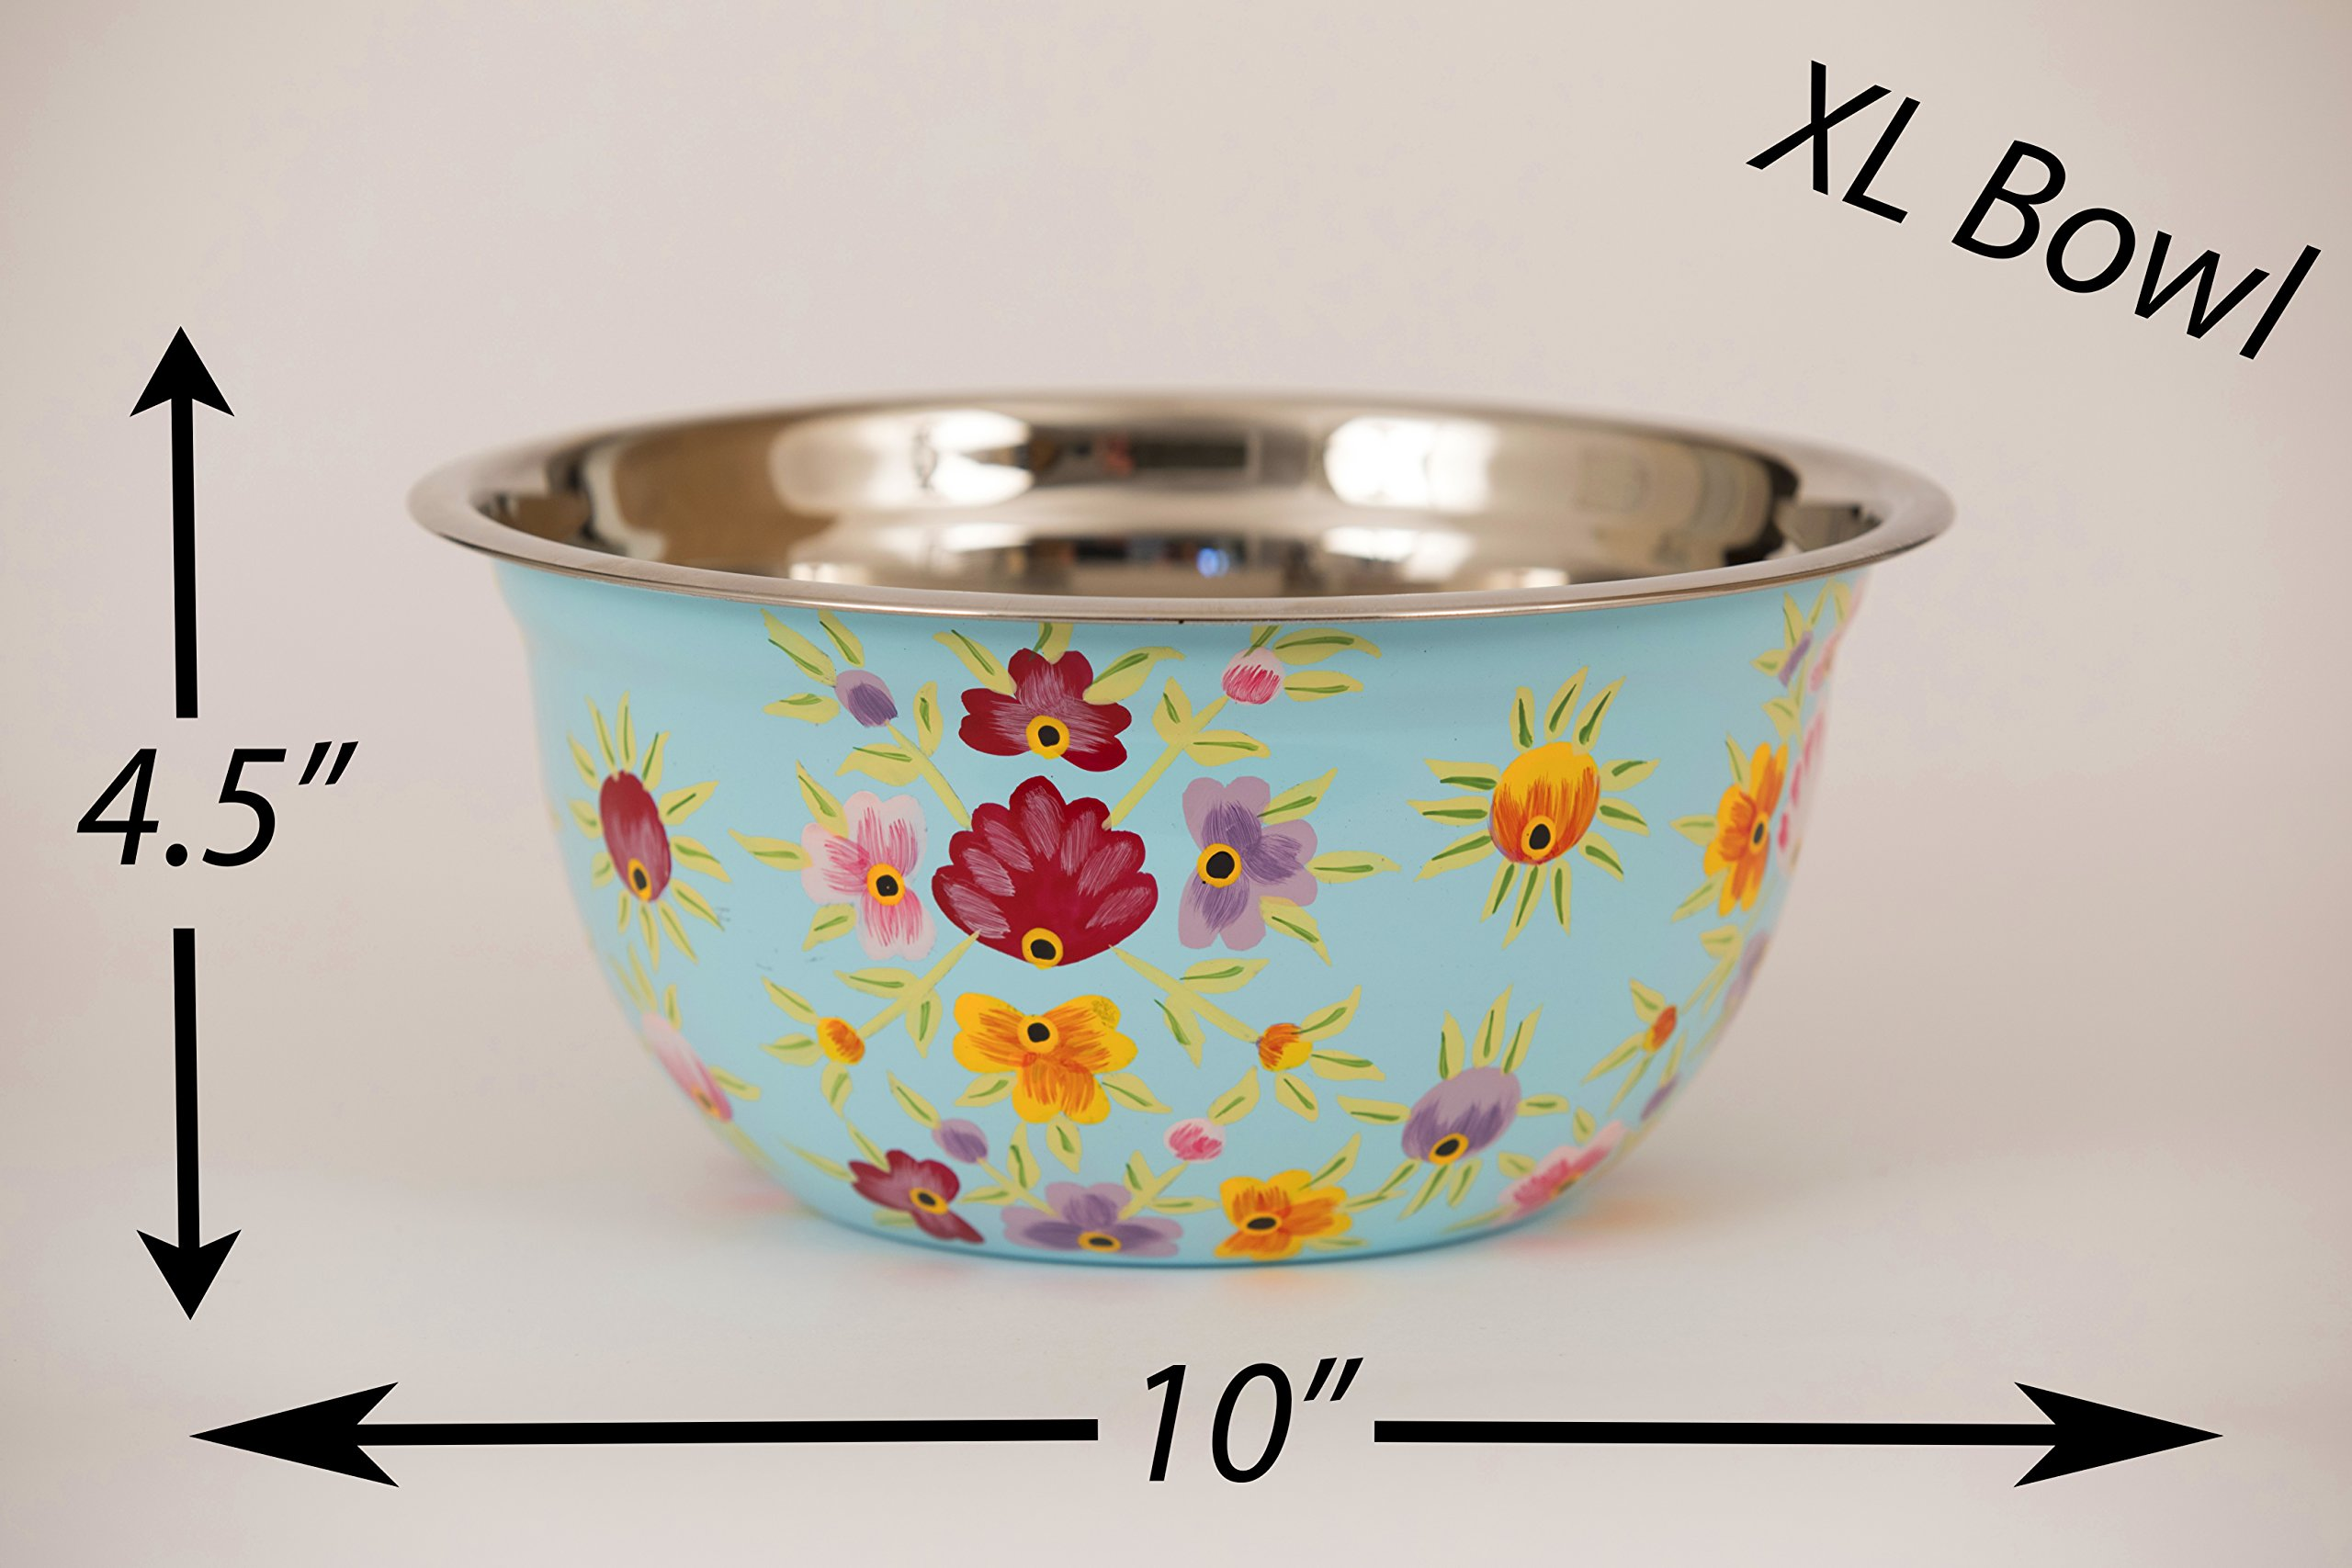 """Hand Painted Stainless Steel Bowl – Large Salad Bowl, Fruit Bowl, Mixing Bowl, & More – Decorative, Handmade Floral Art Bowl for Serving and Home Décor, 10"""" Diameter, 3.6L Volume by, Spices Home Decor by Spices home decor (Image #6)"""